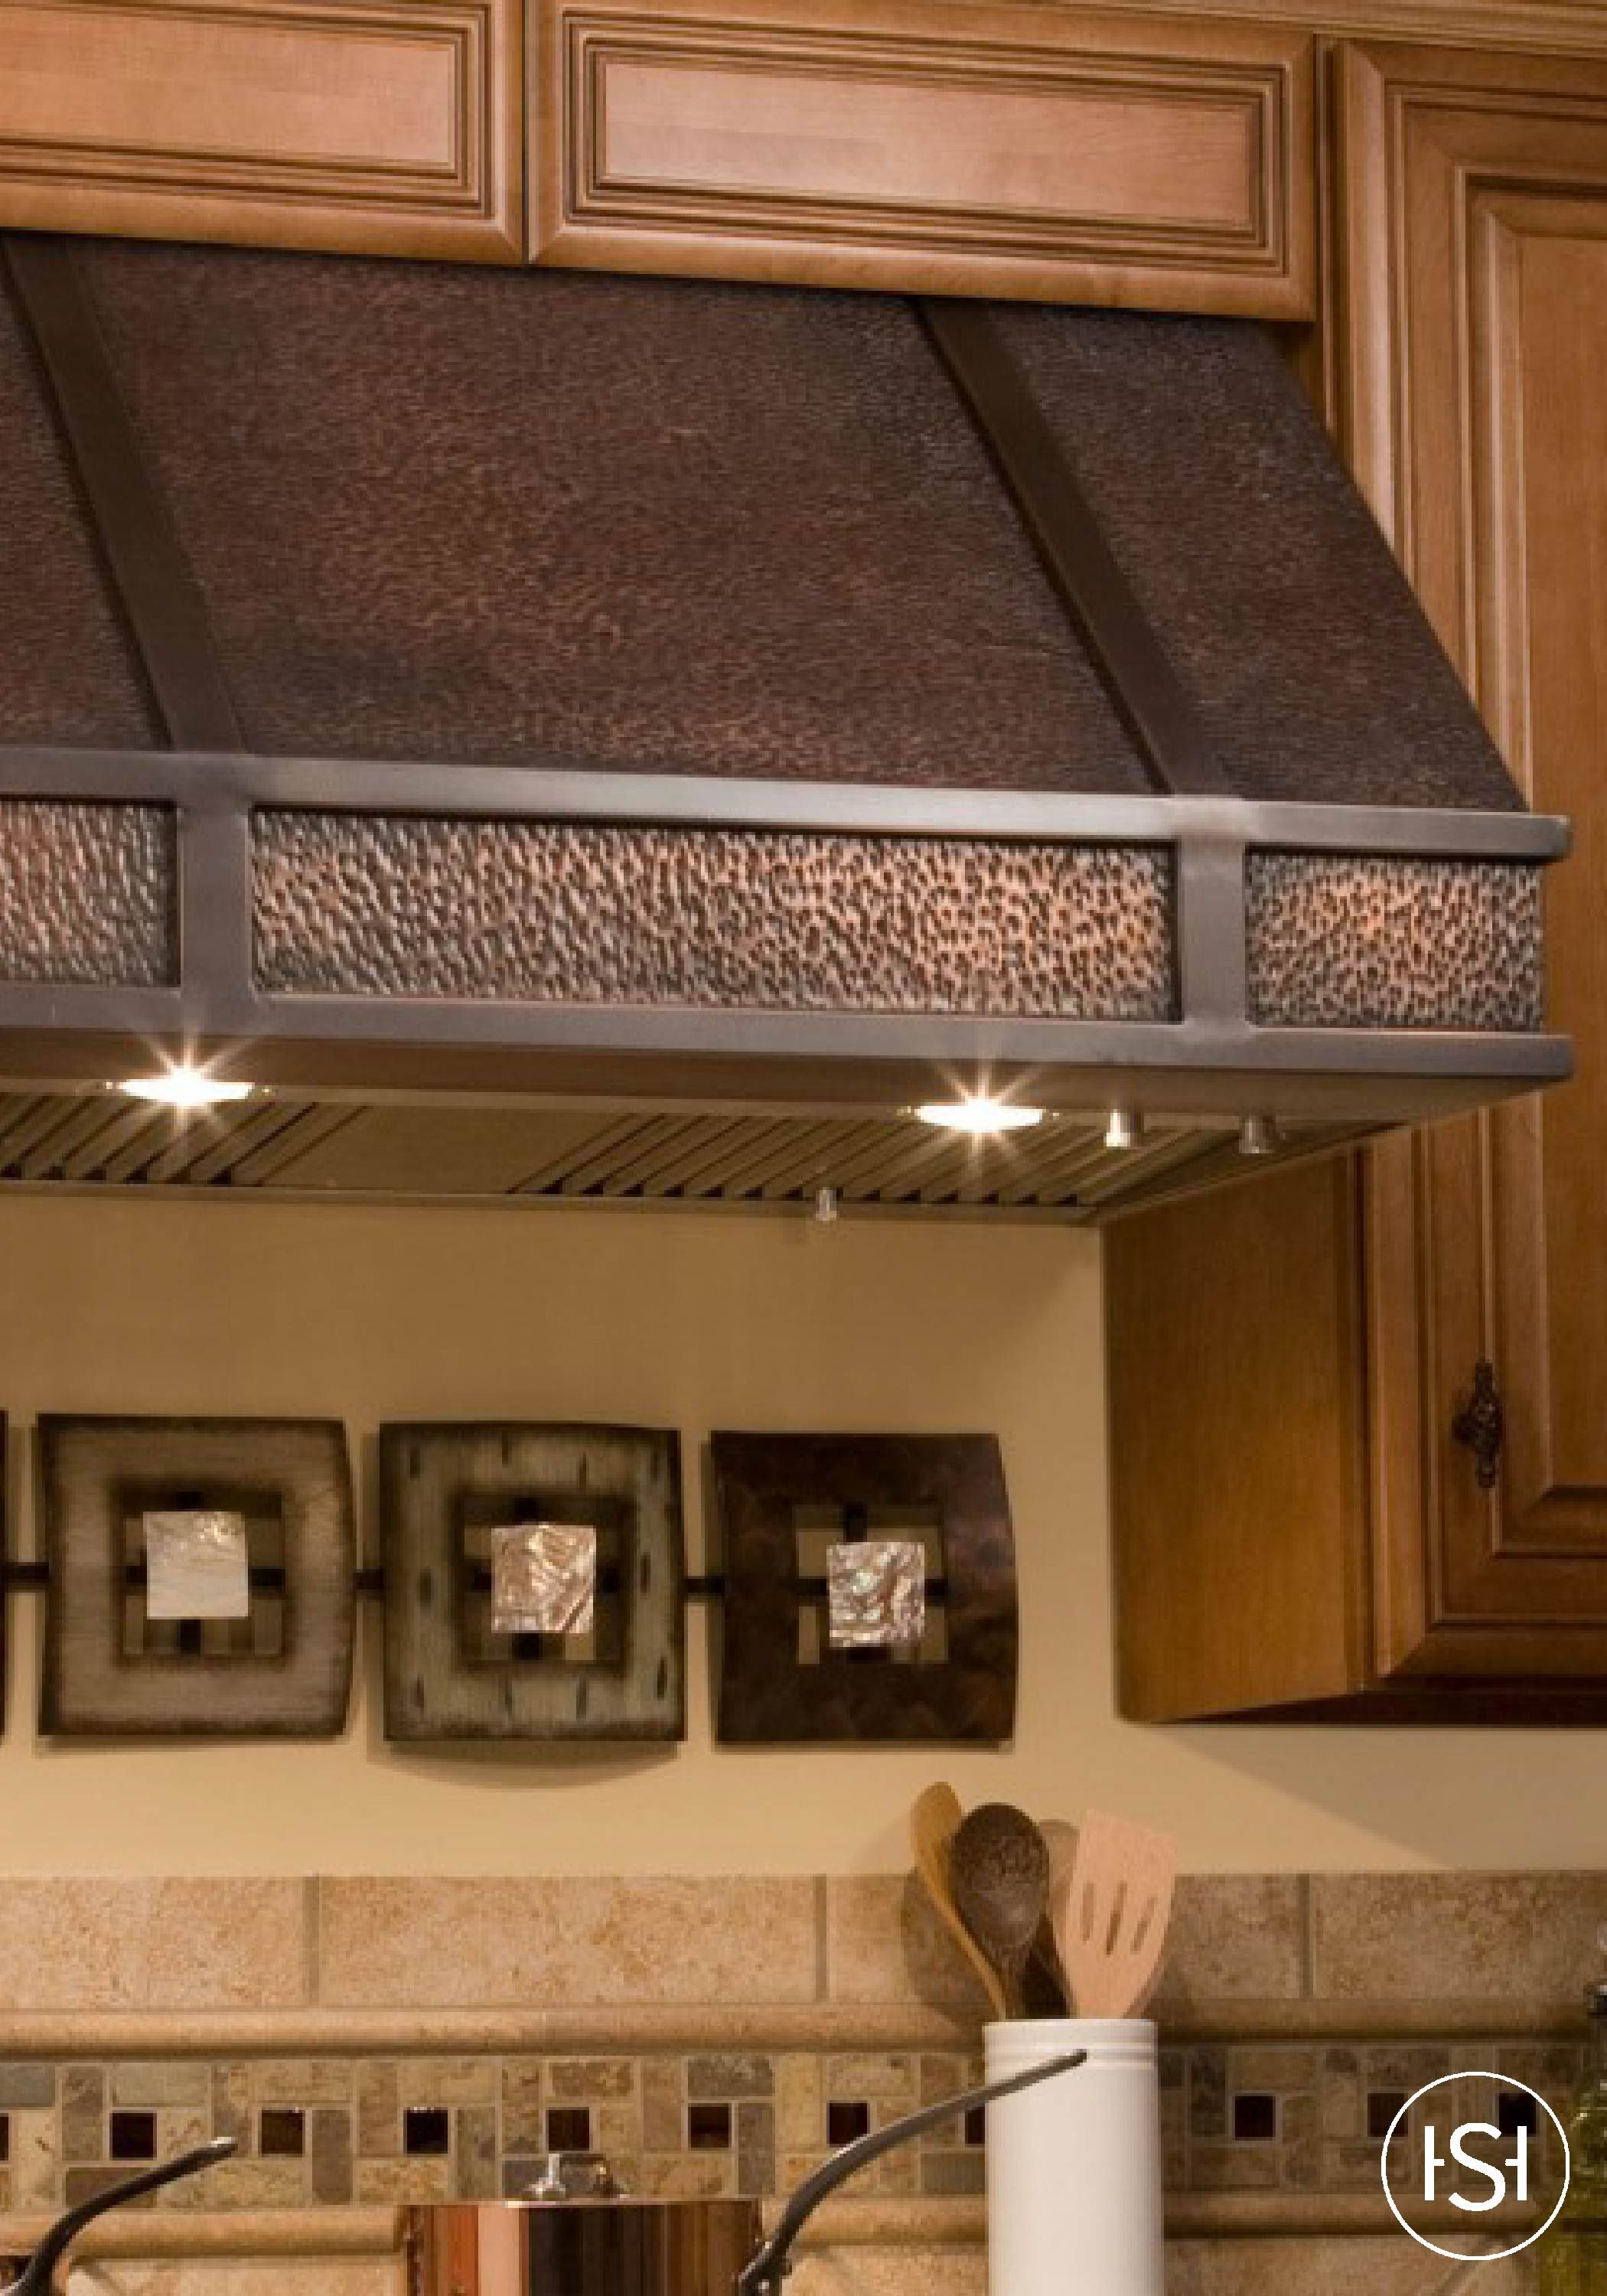 Freshen Up The Air And Style Of Your Kitchen With This Wall Mount Range Hood Featuring A Hand Hammered Texture Accent Bands Made Solid Copper